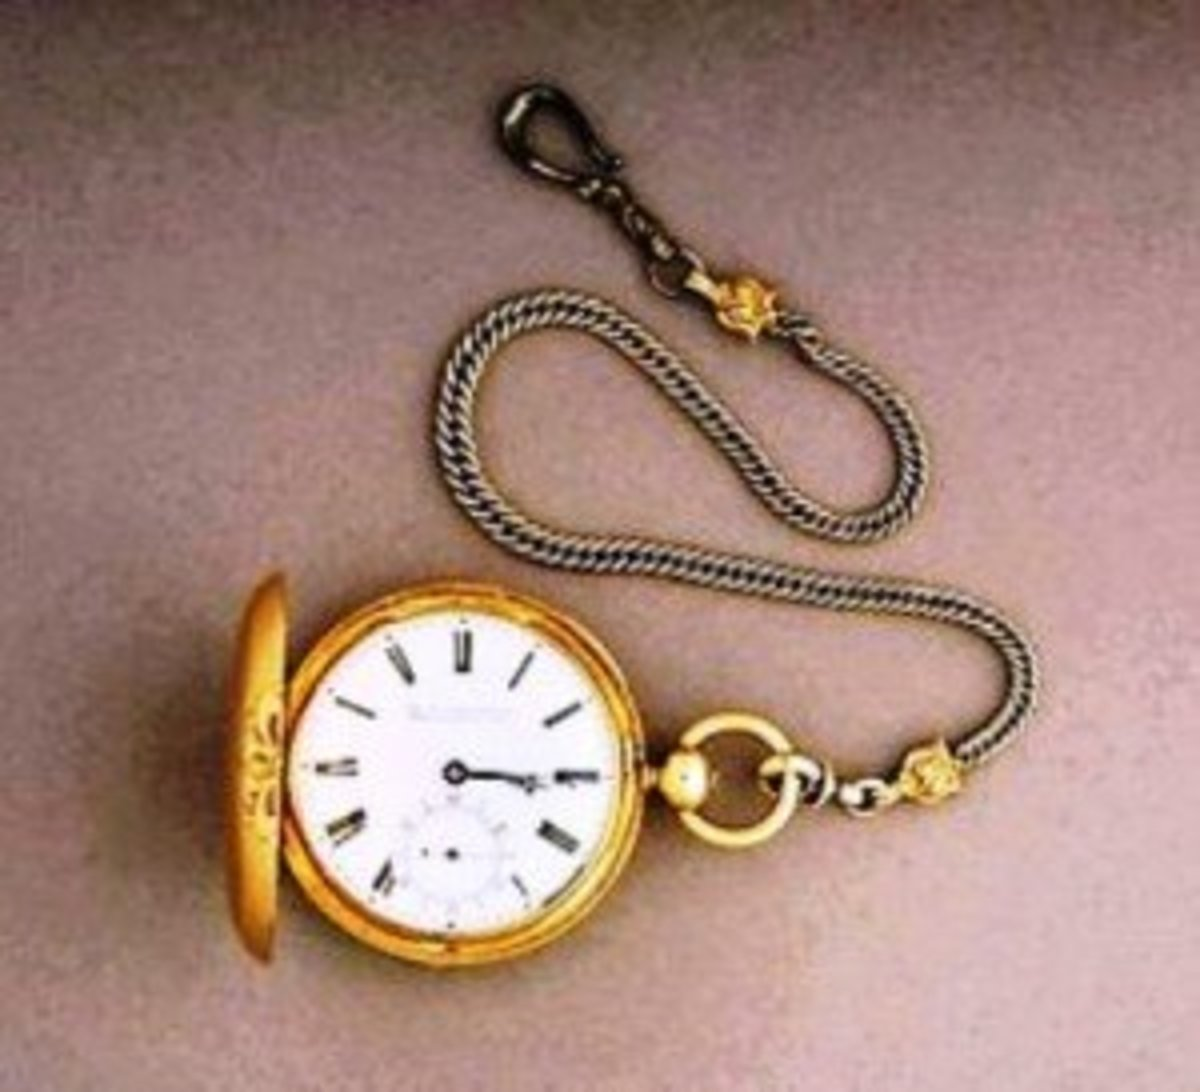 President Lincoln's Watch